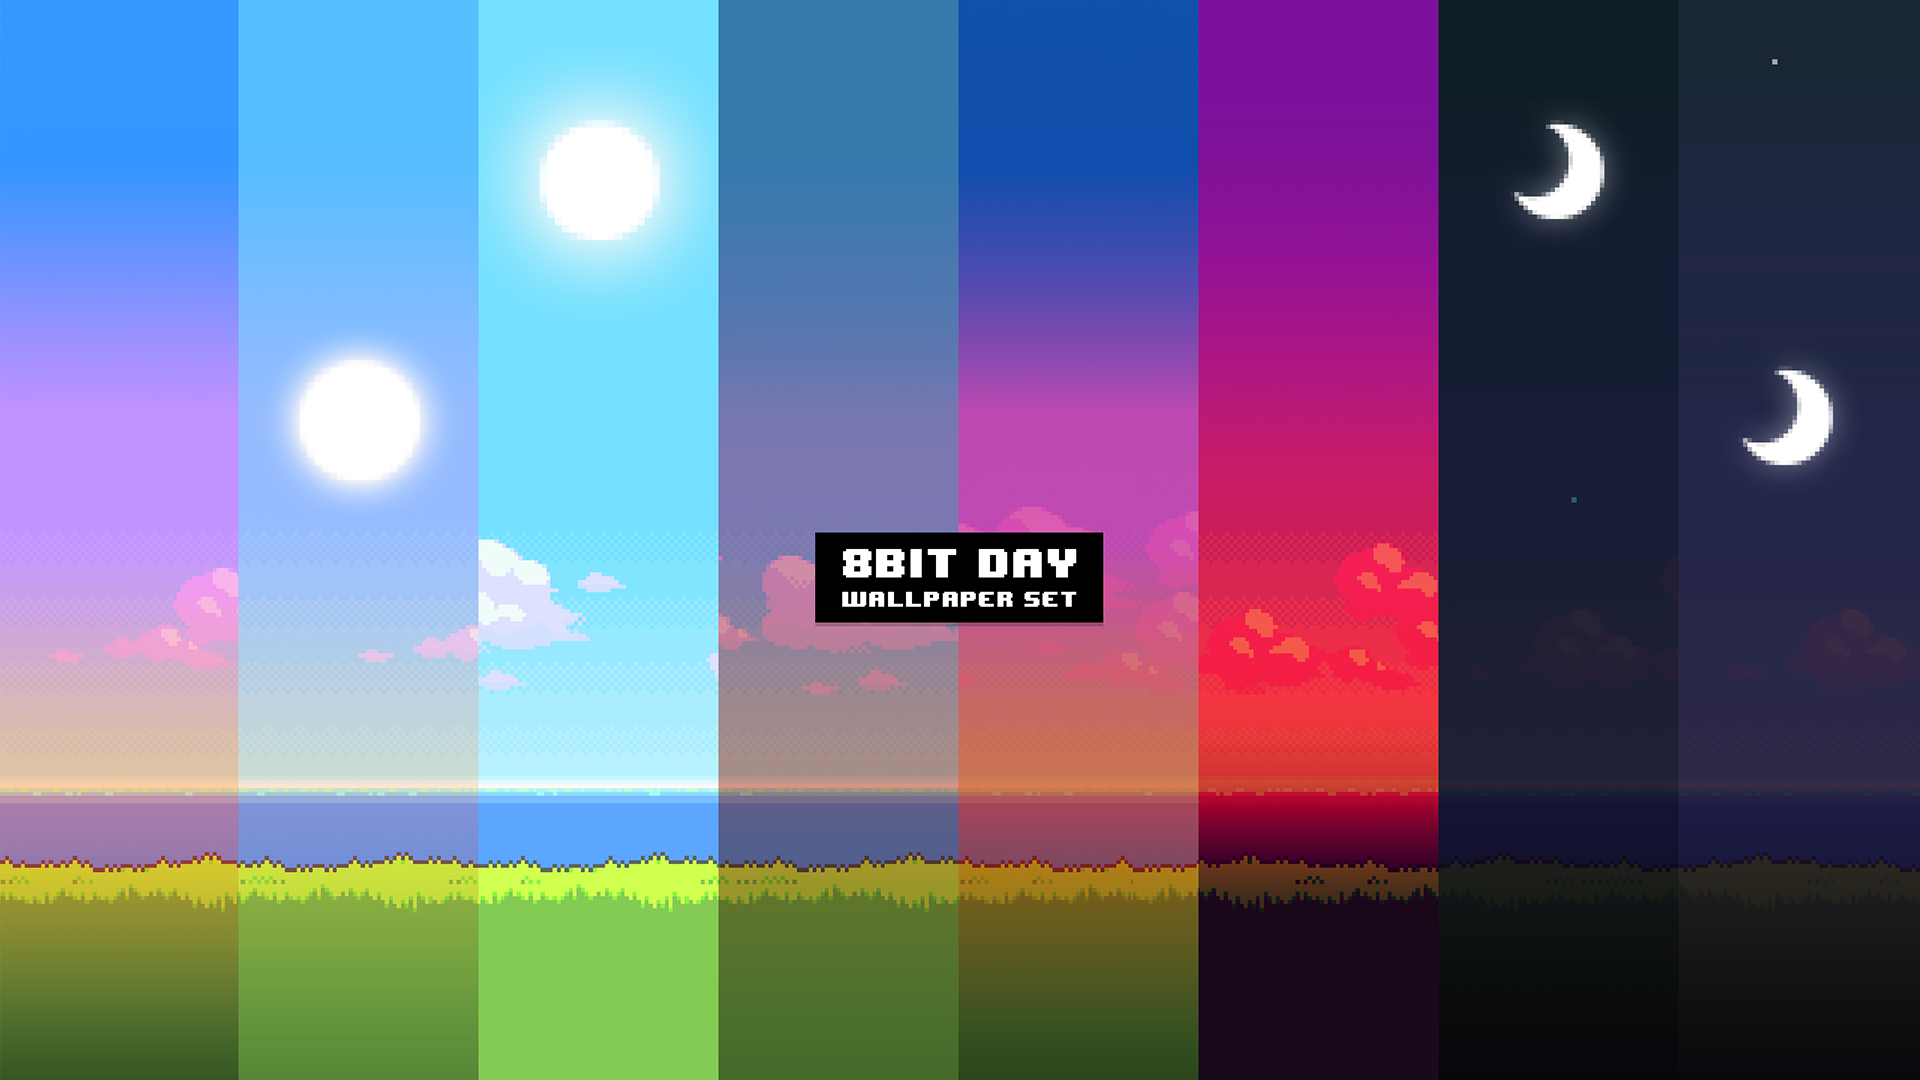 UPDATE New version of the '8Bit Day' Wallpaper Set. Pixel